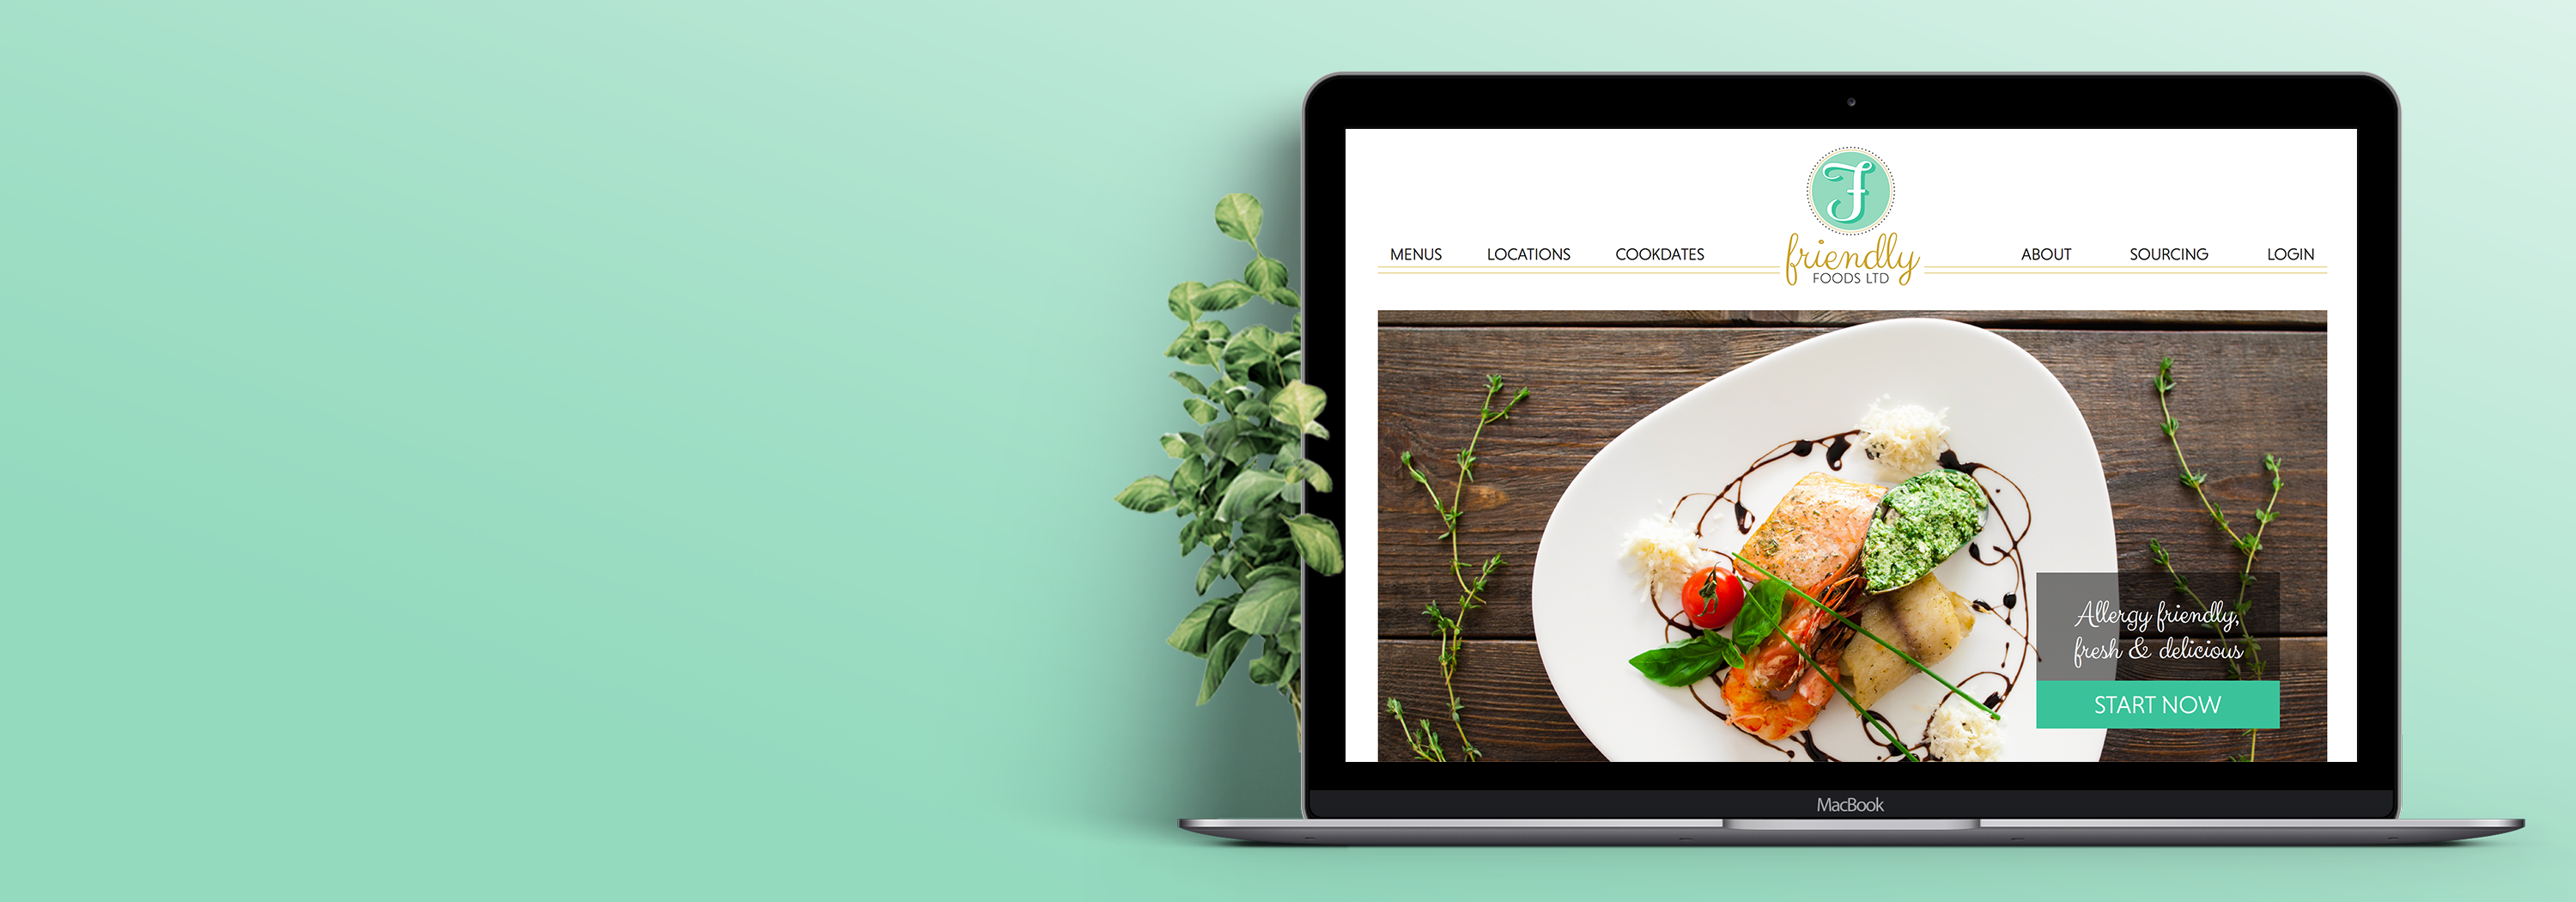 Friendly Foods Website Design and Development